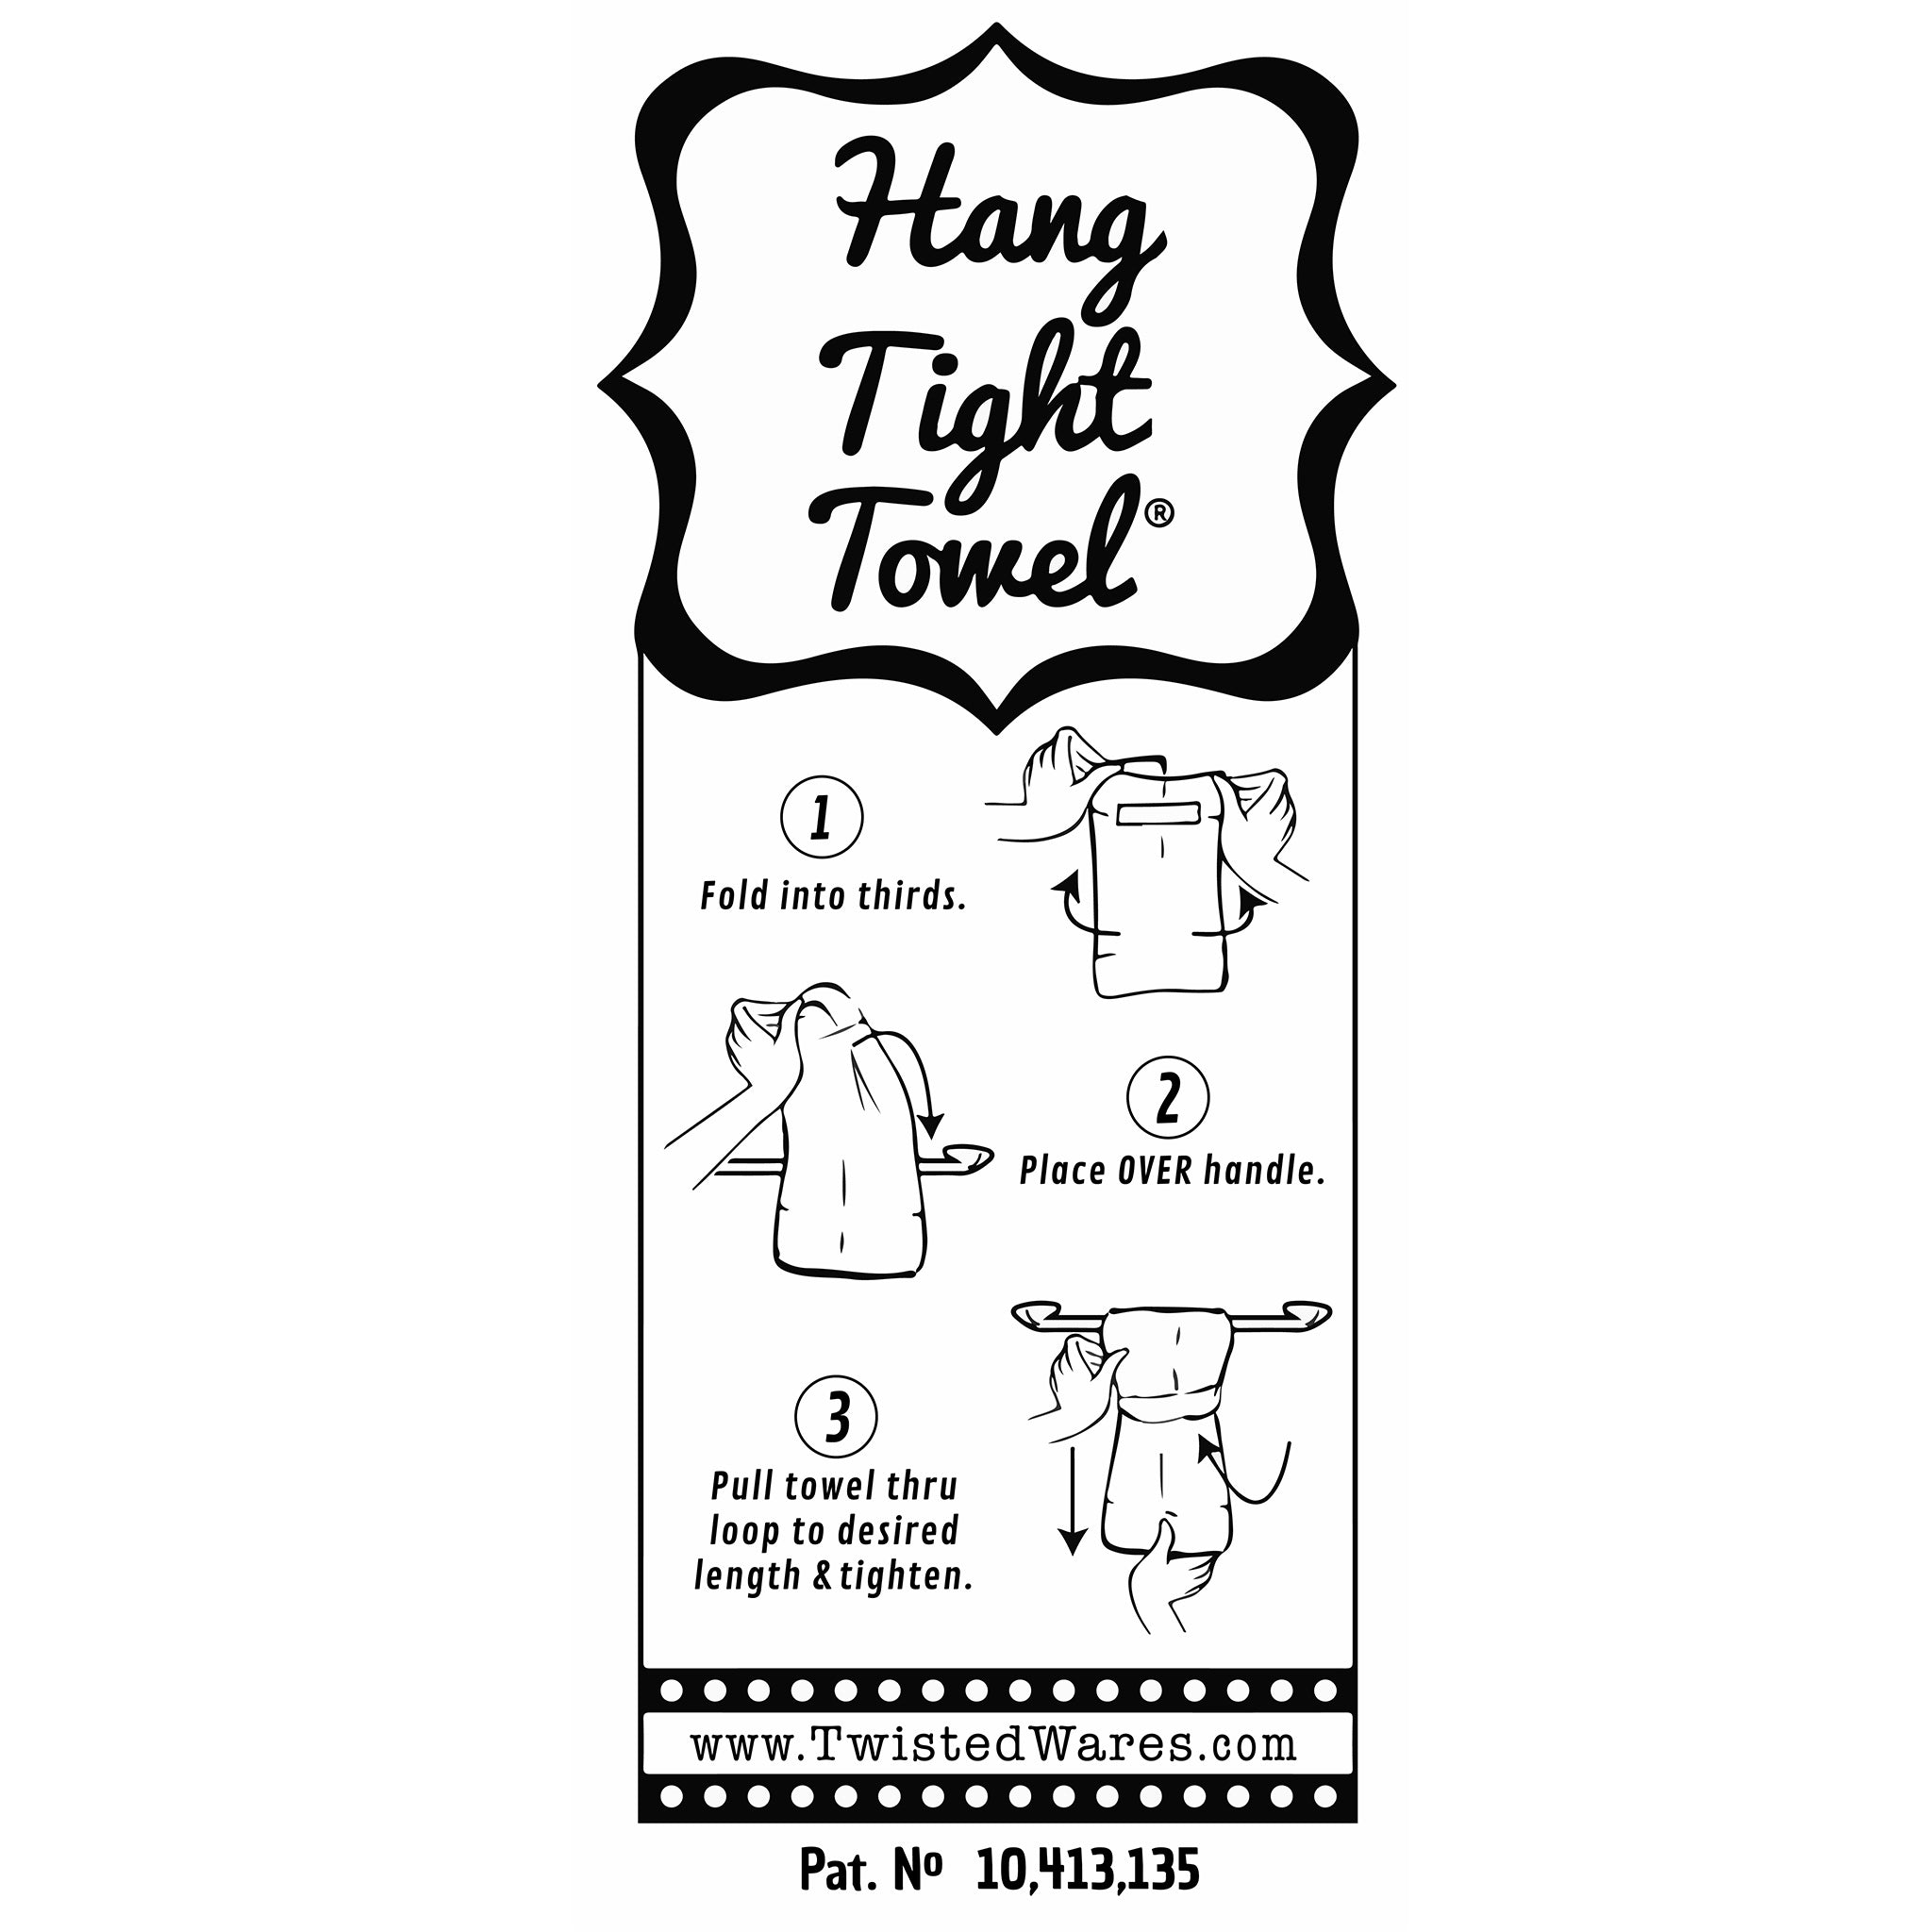 When I Think of You I Touch My Elf Flour Sack Hang Tight Towel®